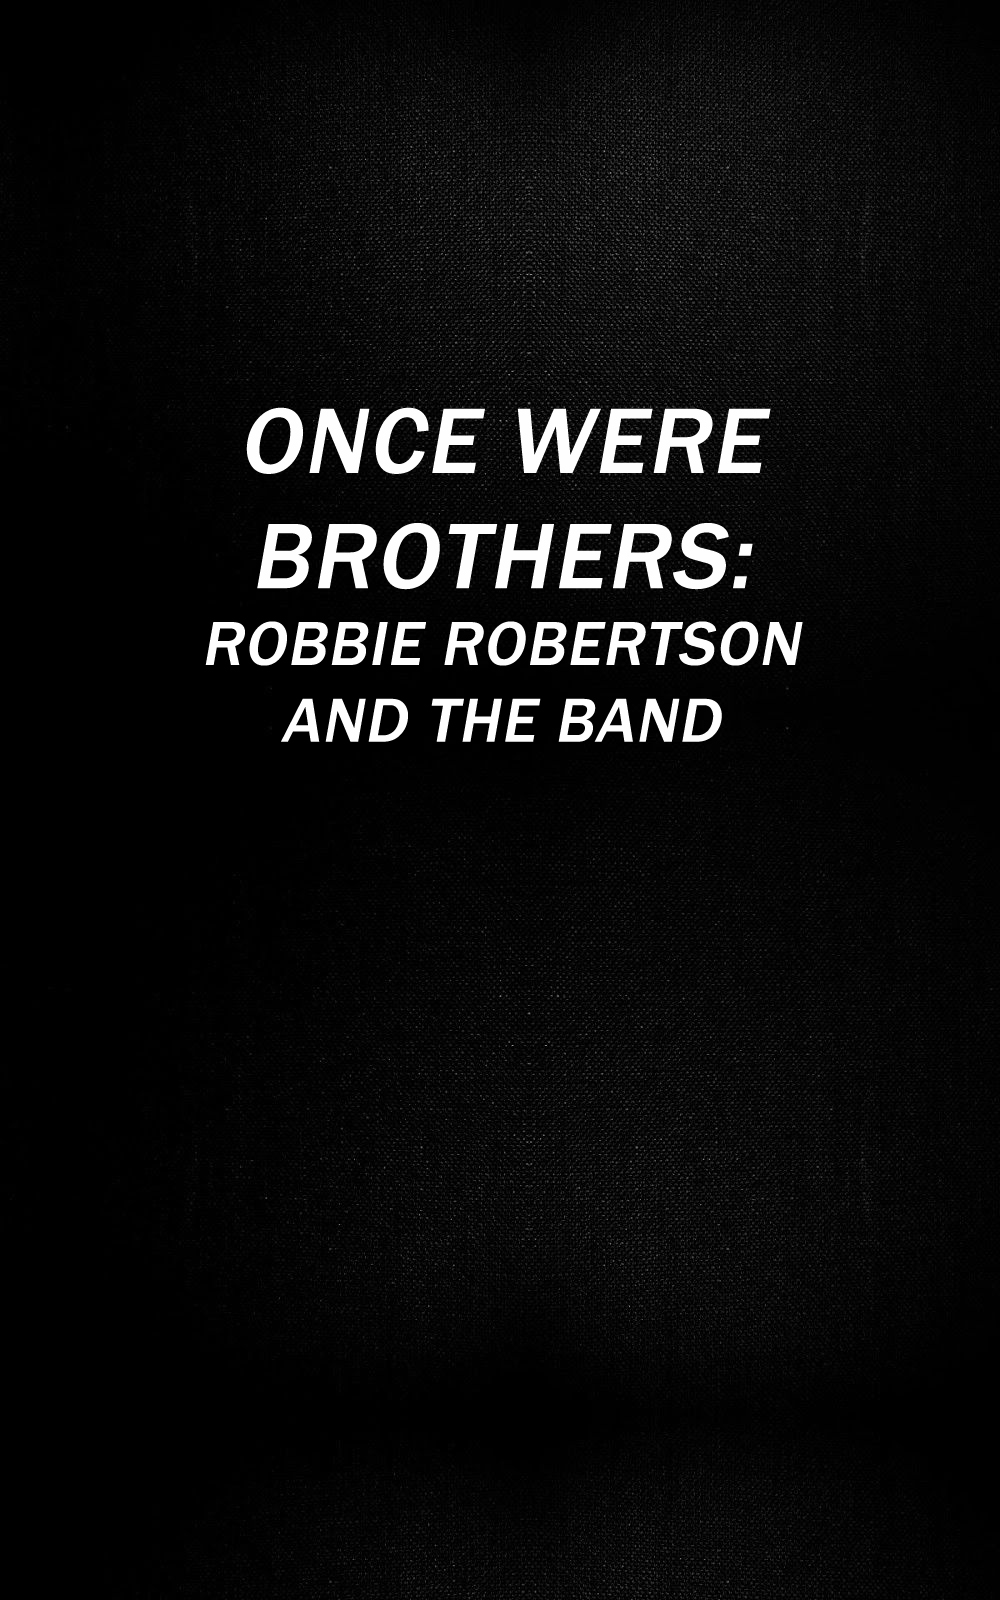 ONCE WERE BROTHERS